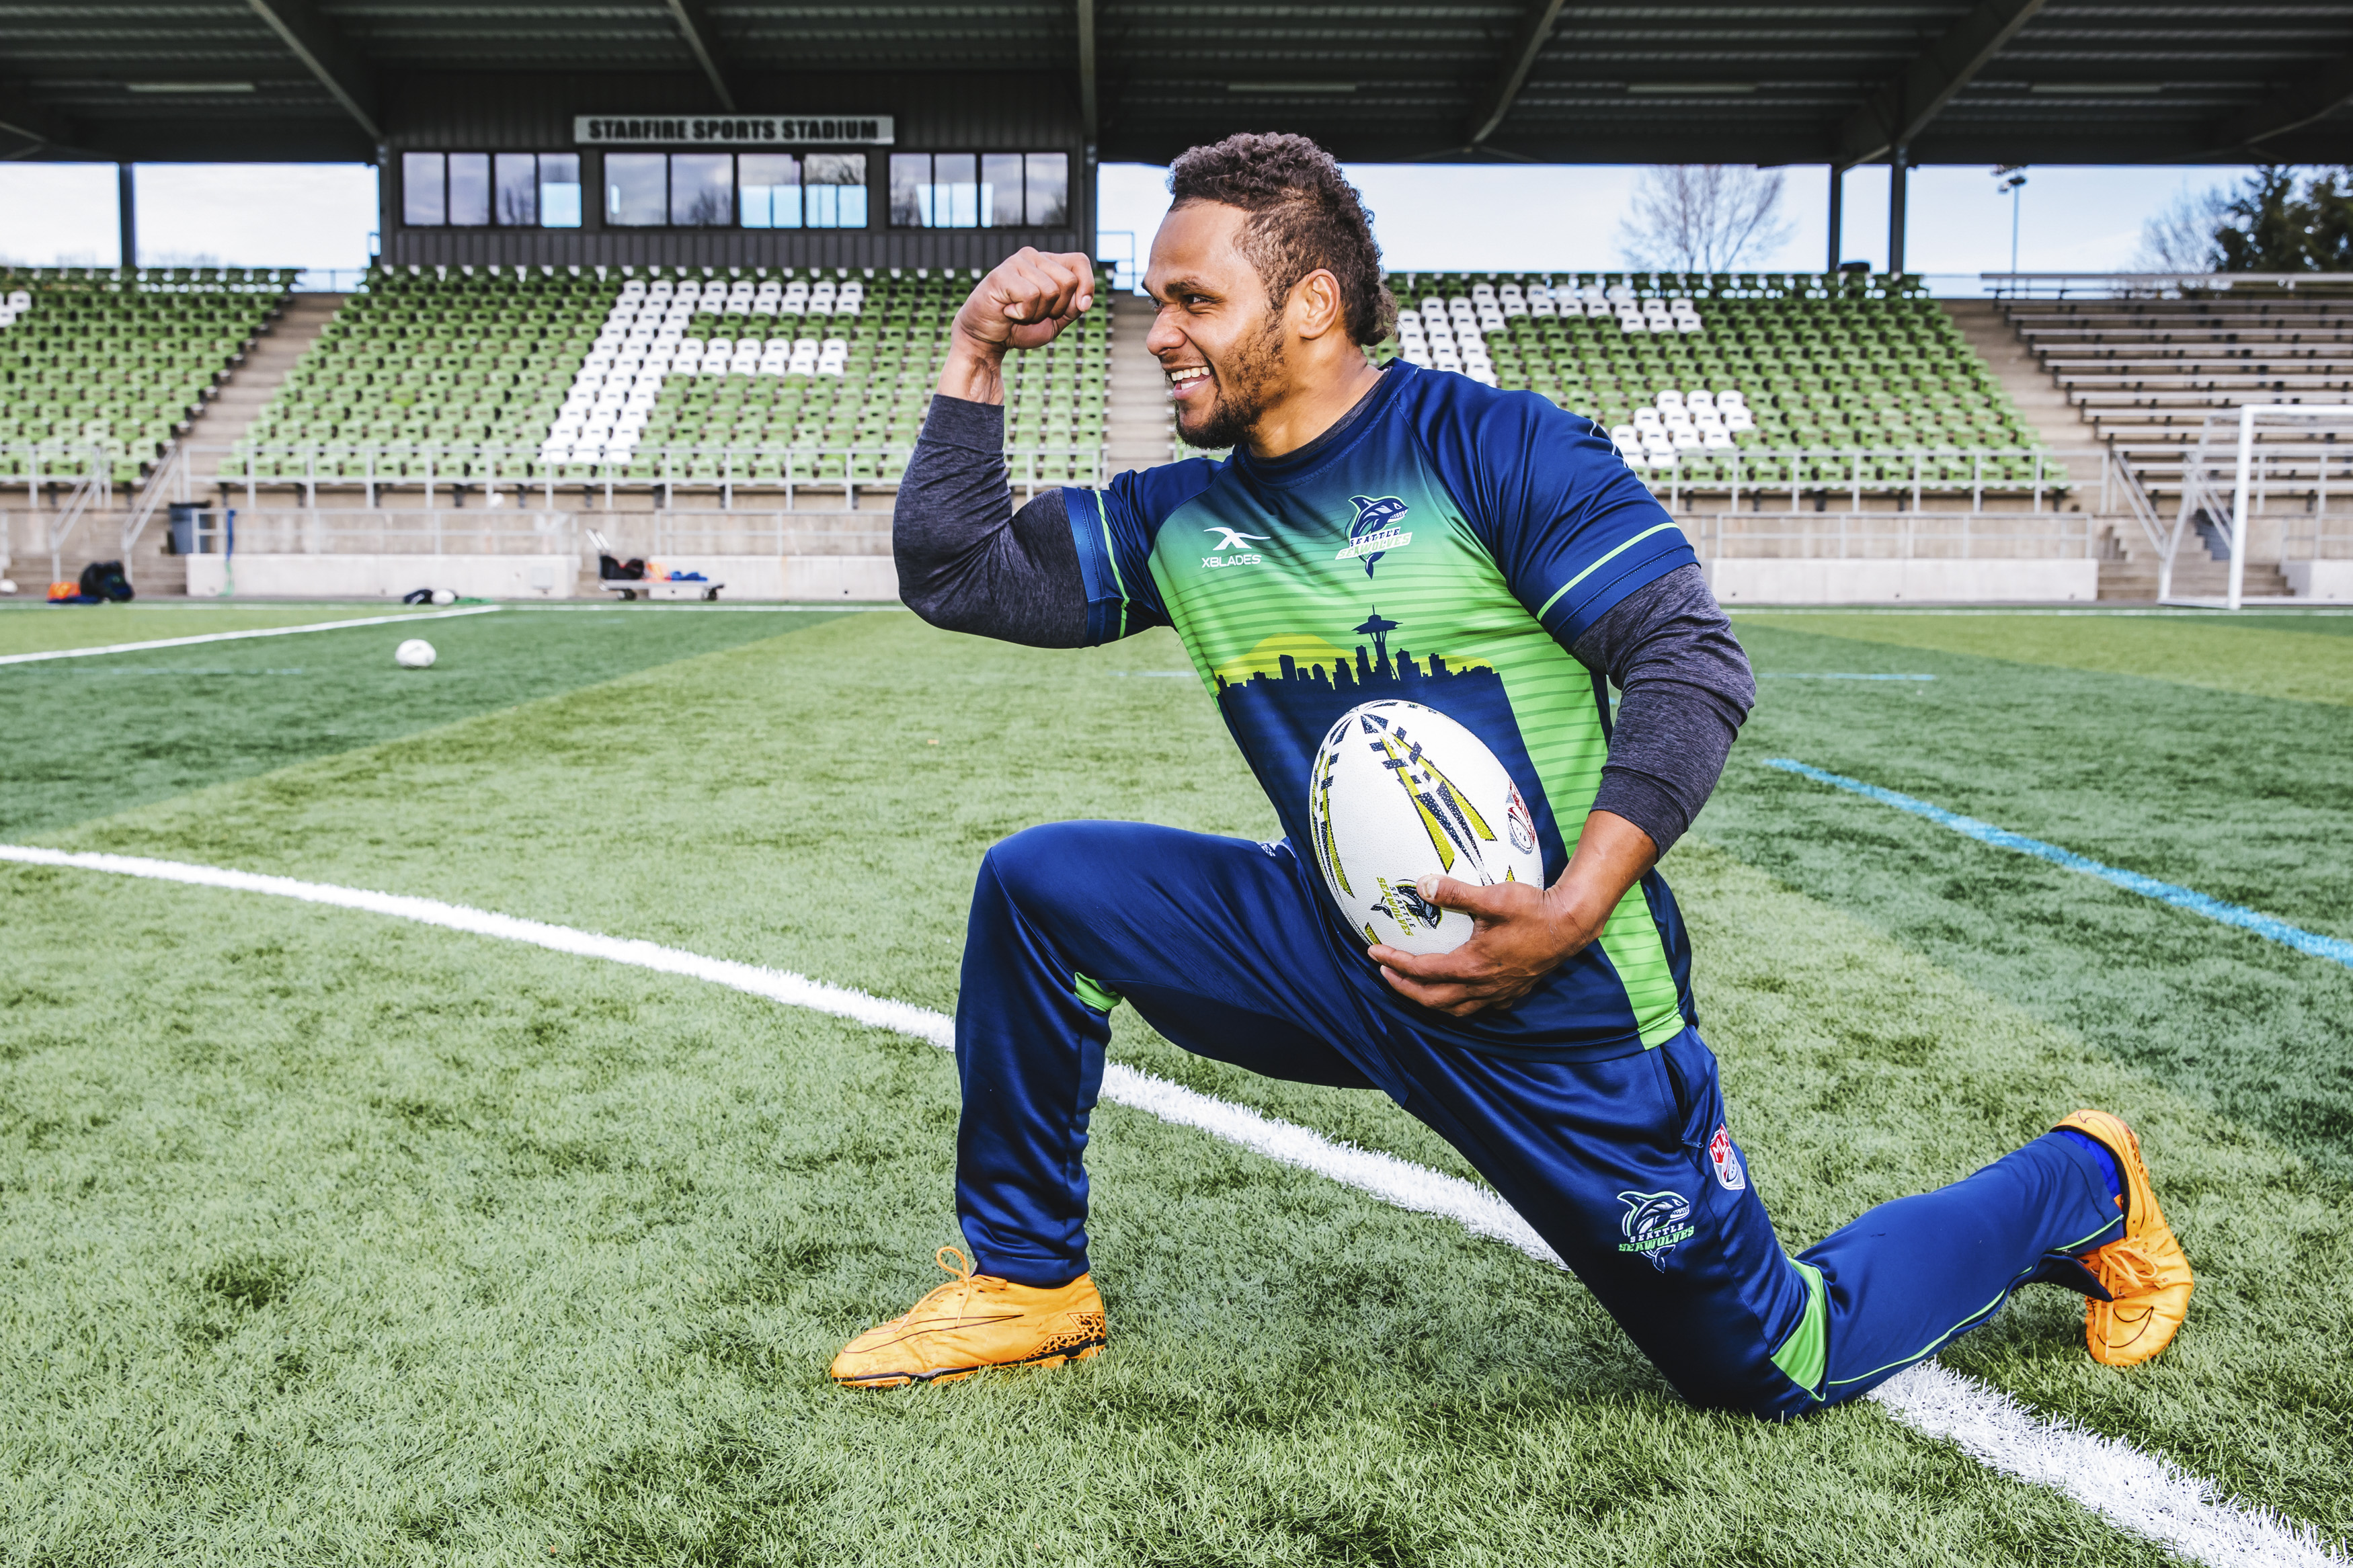 Holy Moses! Sorry, I had to do it. No, but seriously, meet Moses! The 29 year old is originally from Suva, Fiji and plays Center-Wing for the Seattle Seawolves! His favorite film is Passion of Christ (Image: Seattle Refined).